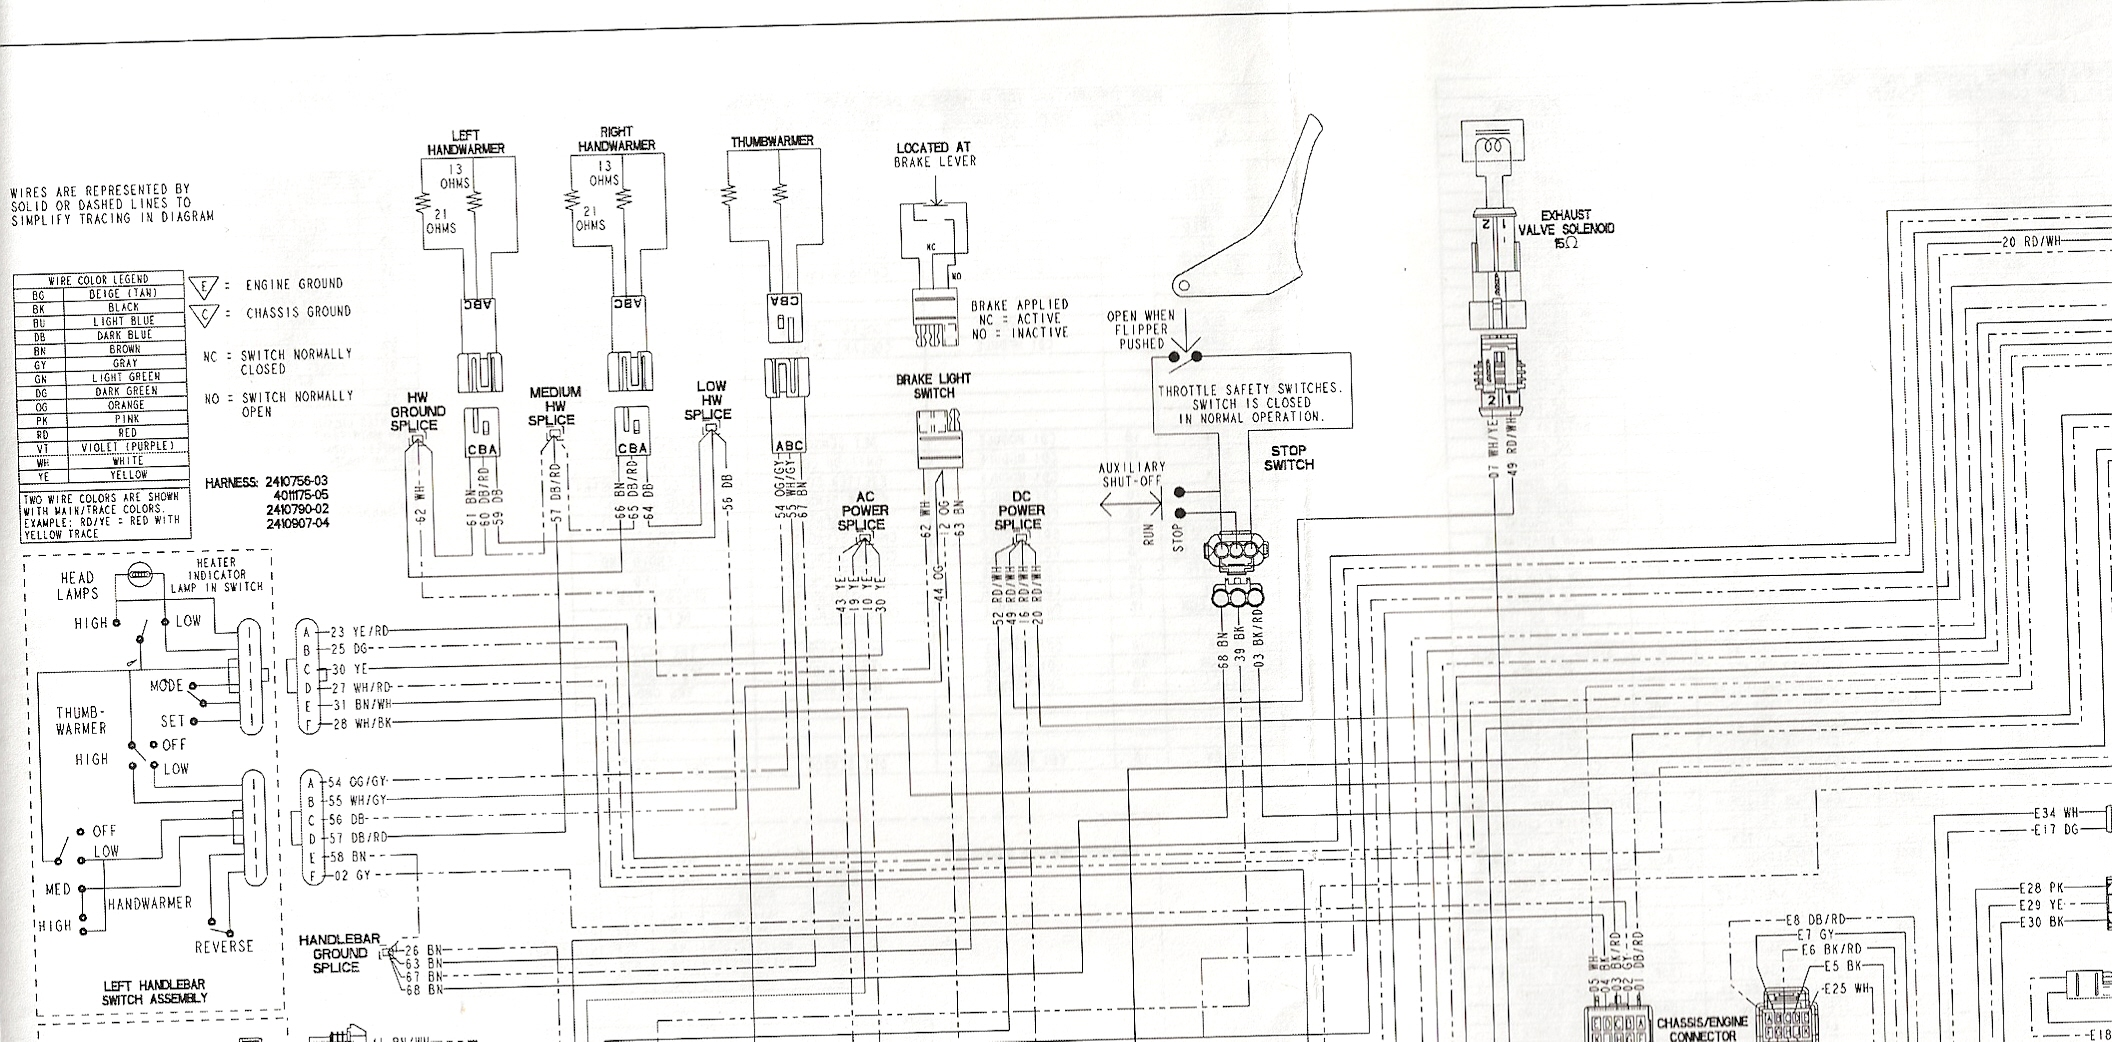 2011 polaris 500 sportsman key diagram wiring wire management  2011 polaris 500 sportsman key diagram wiring #15